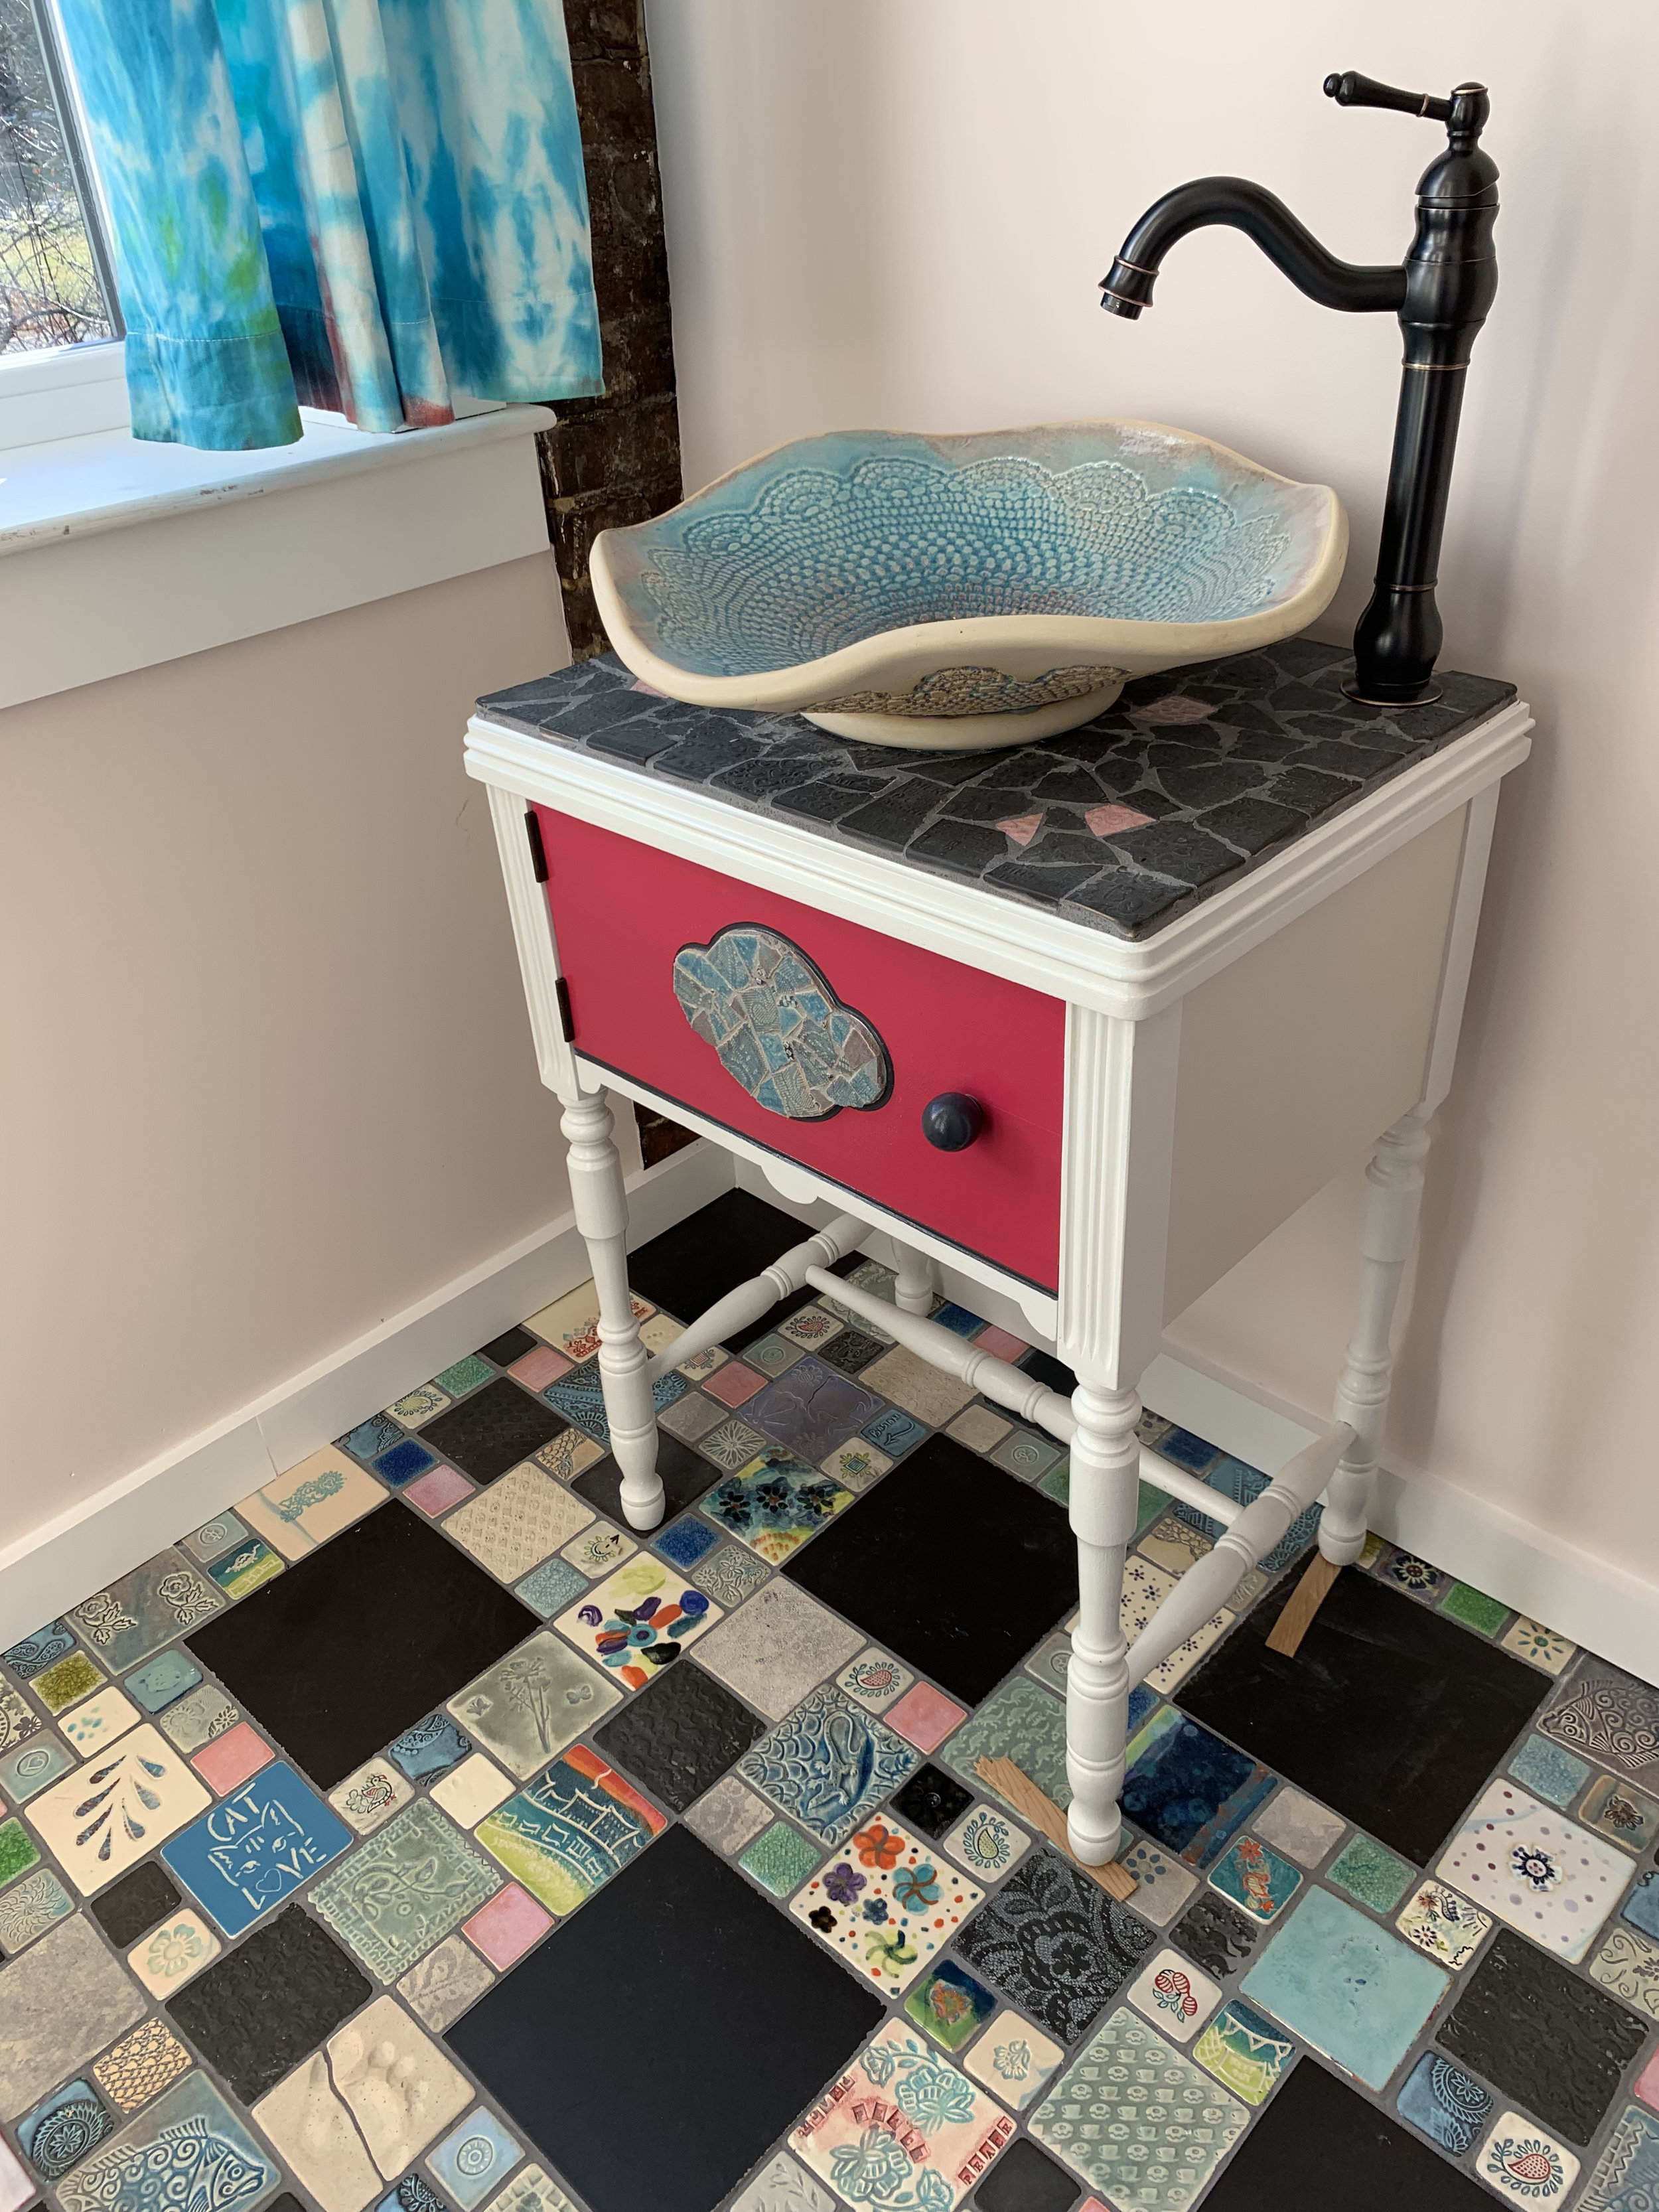 Community Tile floor, a slightly flawed sink, and a sewing machine cabinet made into a vanity